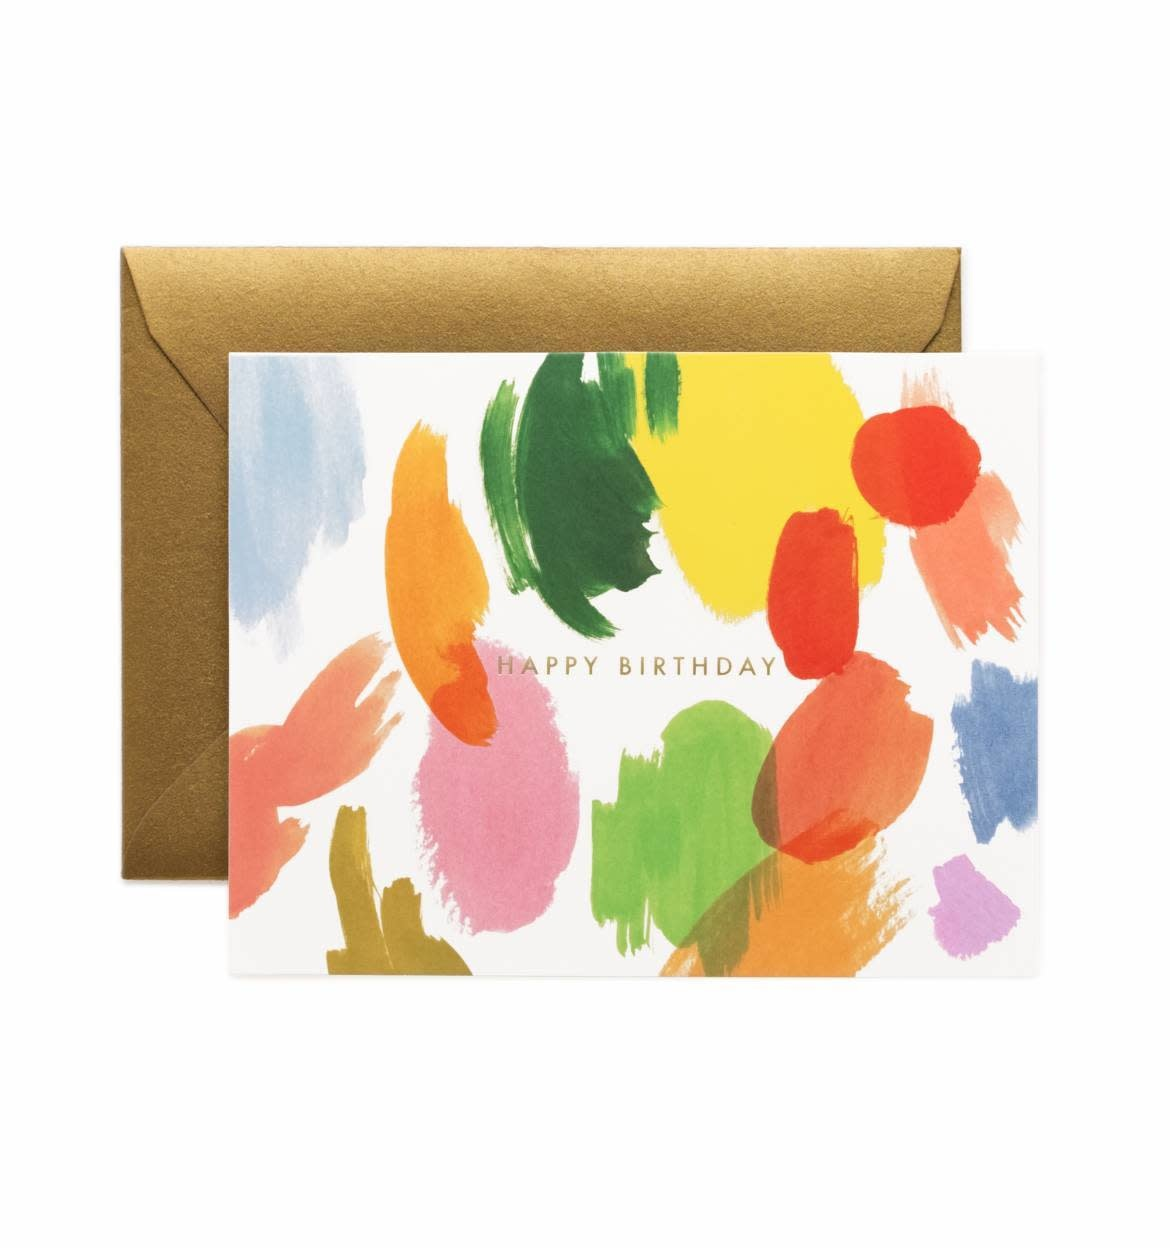 Rifle Paper Co. Rifle Paper Co. Card - Palette Birthday